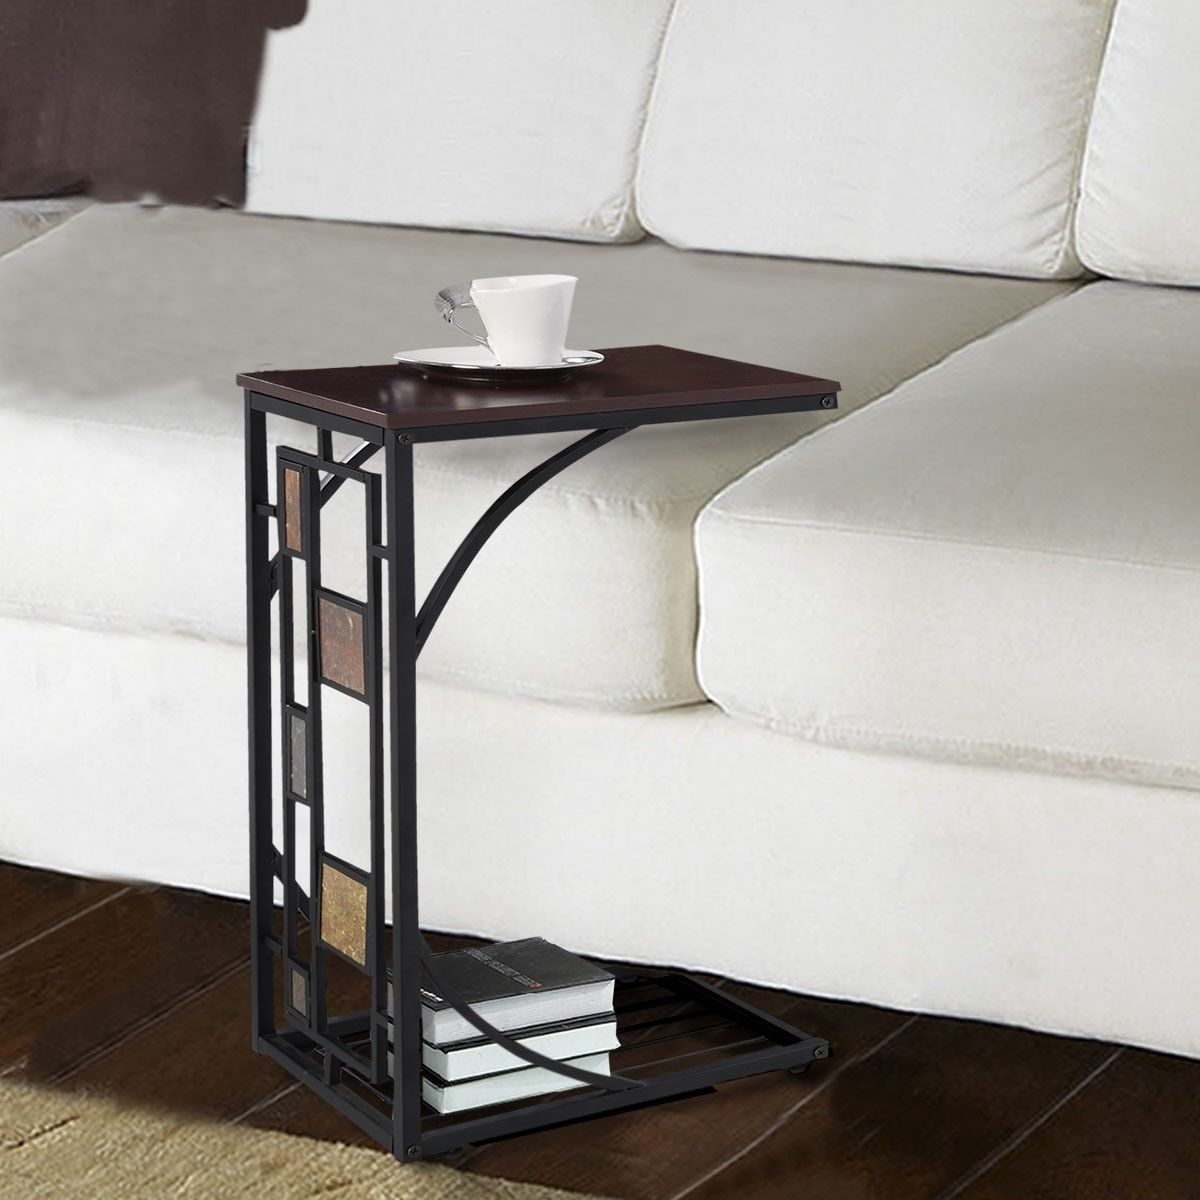 C Shaped Sofa Table It Is Very Important To Understand The Constraints For